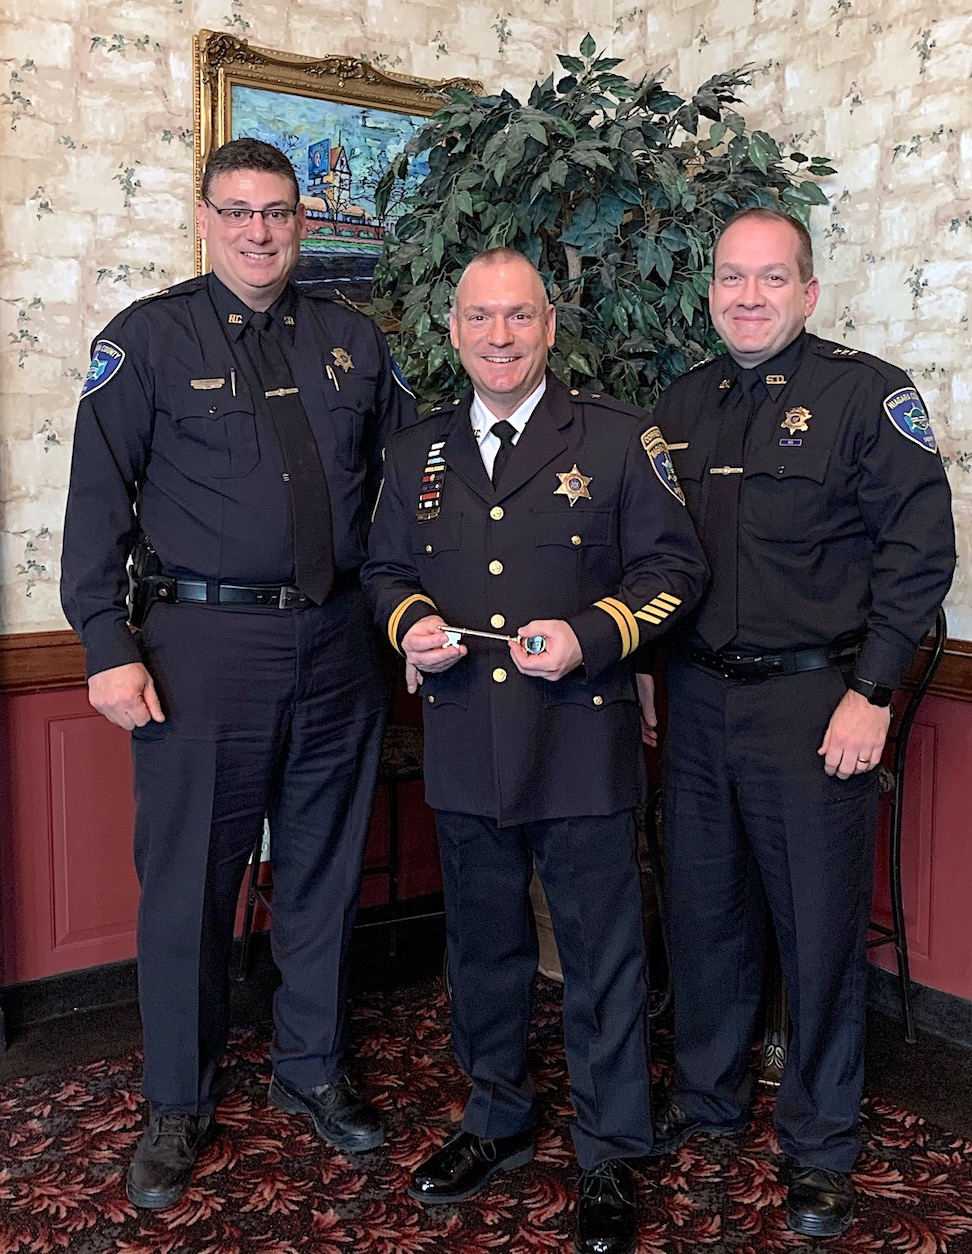 From left: Niagara County Sheriff James R. Voutour, award-winner Deputy Chief Daniel Engert and Undersheriff Michael J. Filicetti. (Submitted photo)